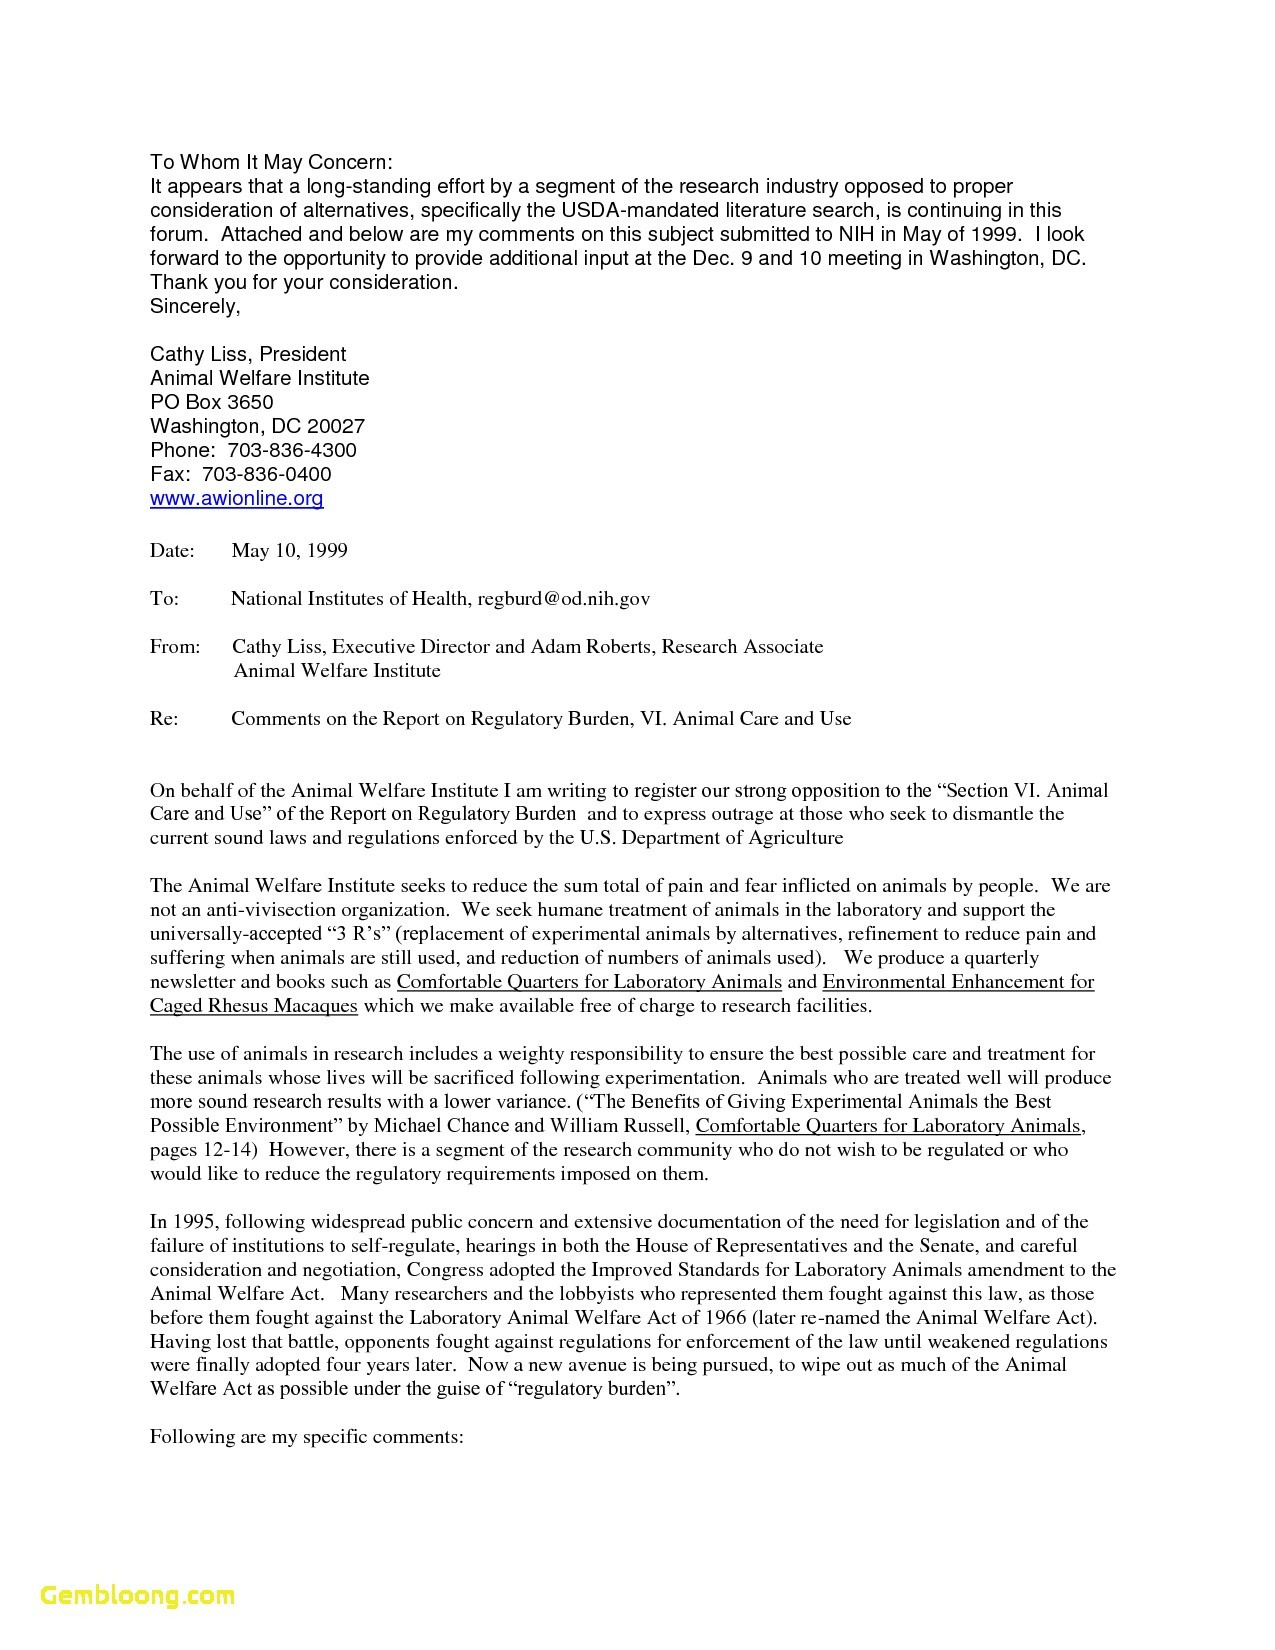 General Cover Letter Template Free - General Cover Letter to whom It May Concern